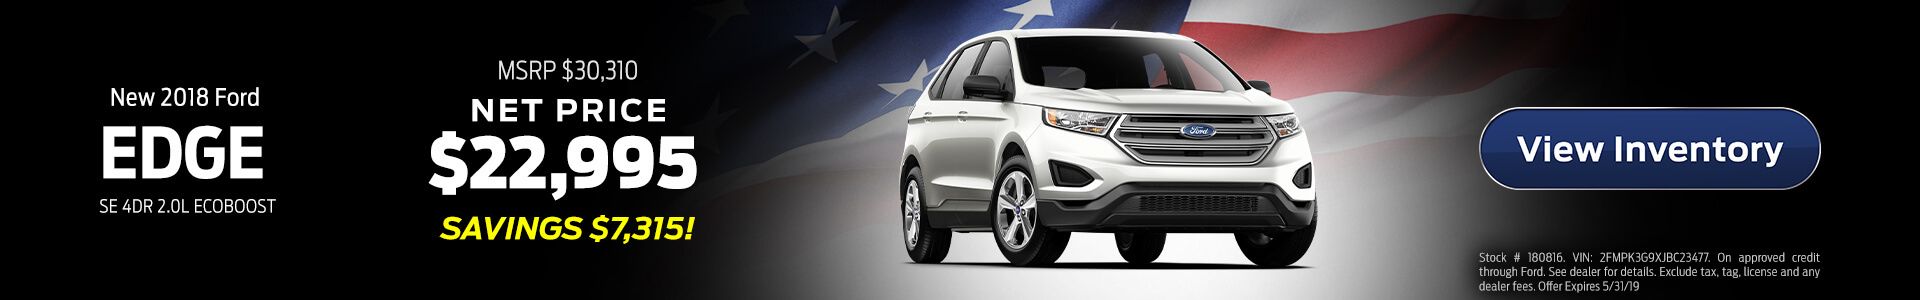 Ford Edge $23,495 Purchase